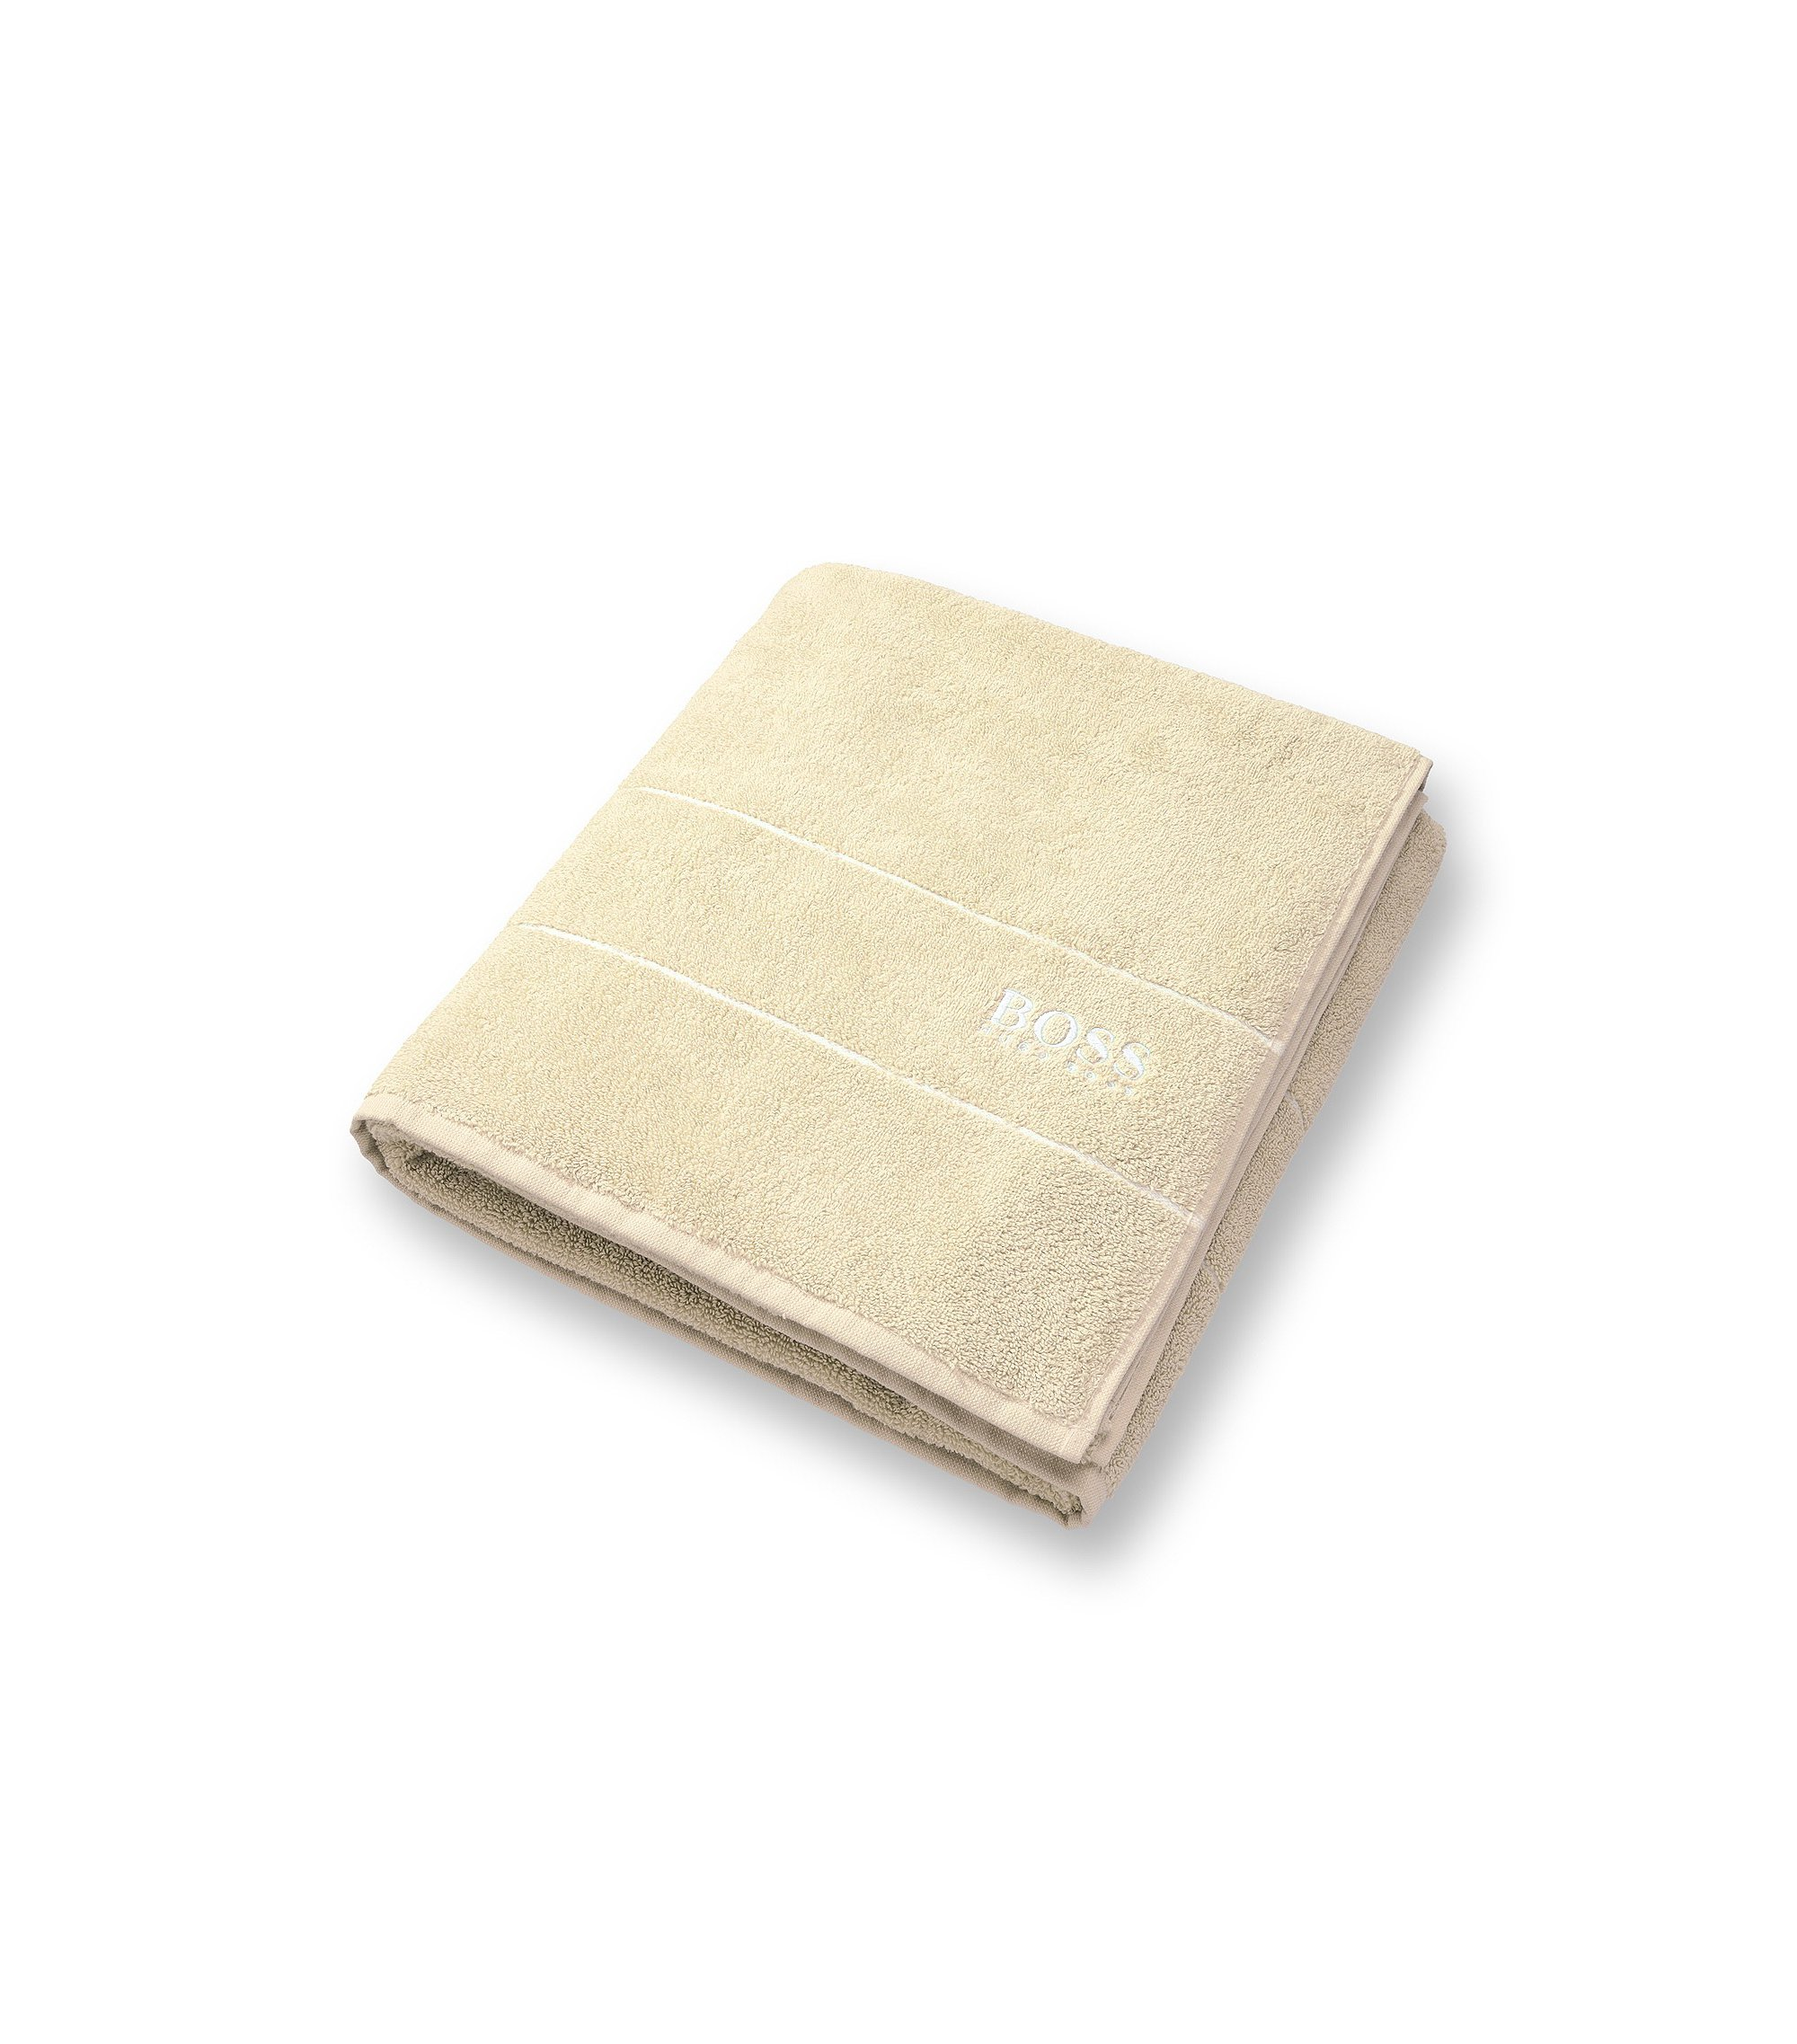 Finest Egyptian cotton bath sheet with logo border, Light Beige